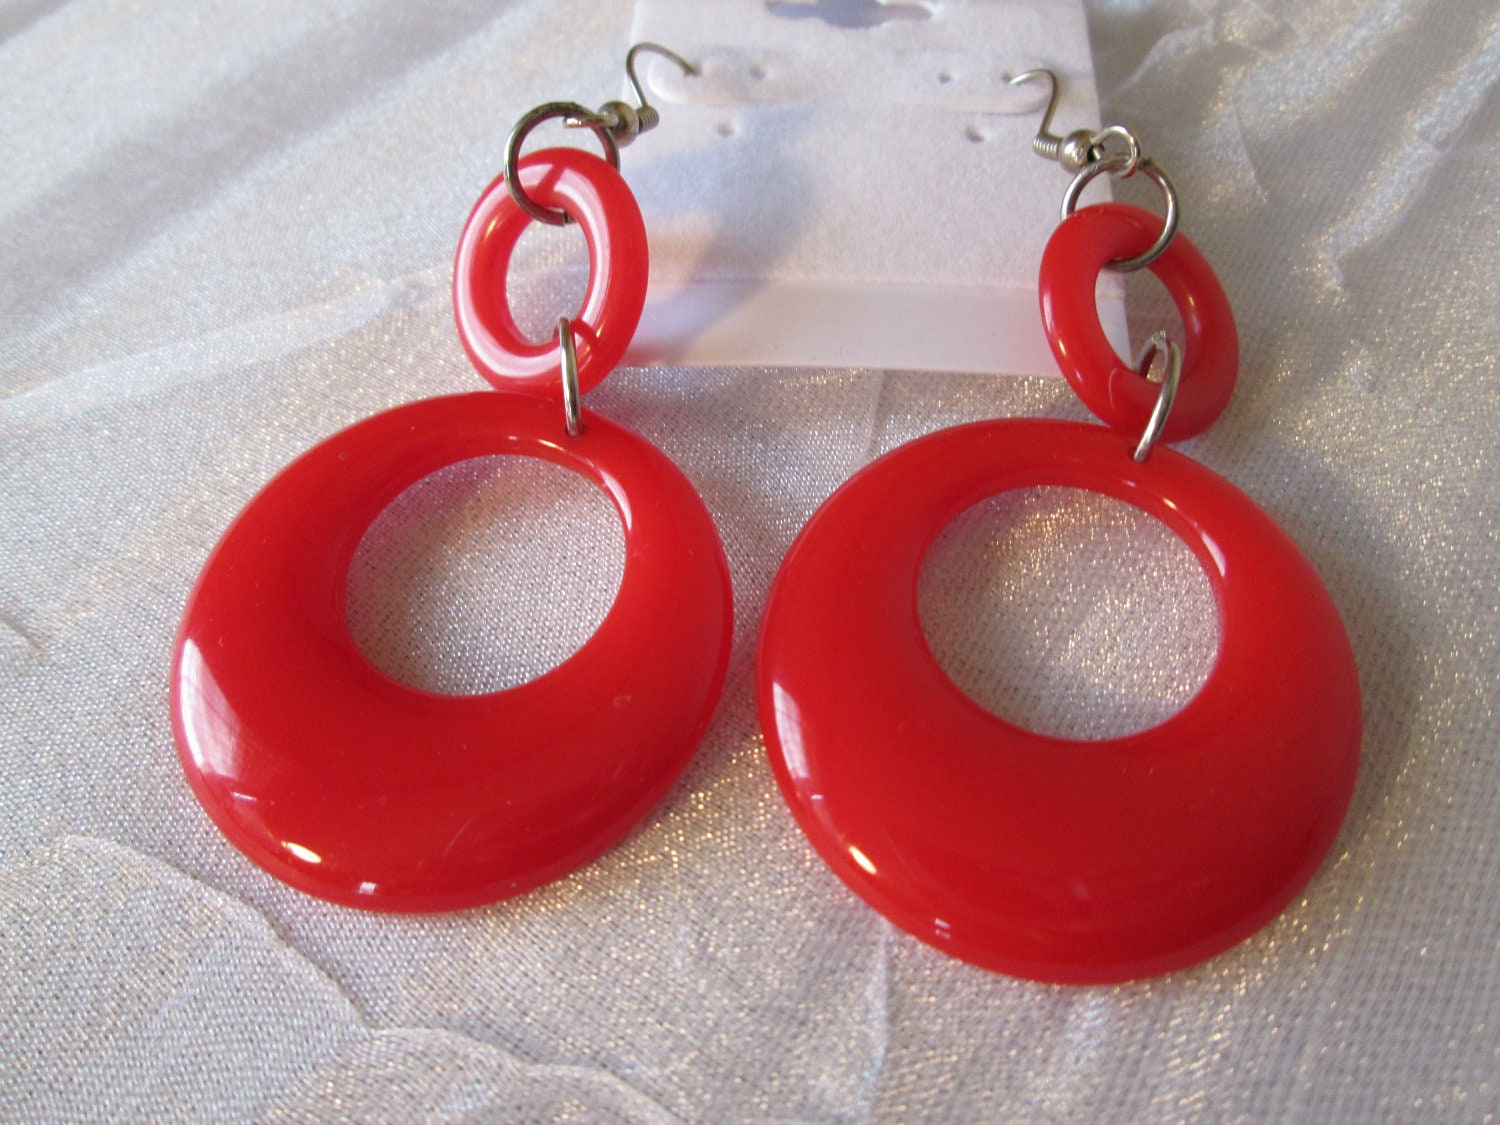 Hoop Earrings, Red Plastic Groovy Pierced 🔎zoom